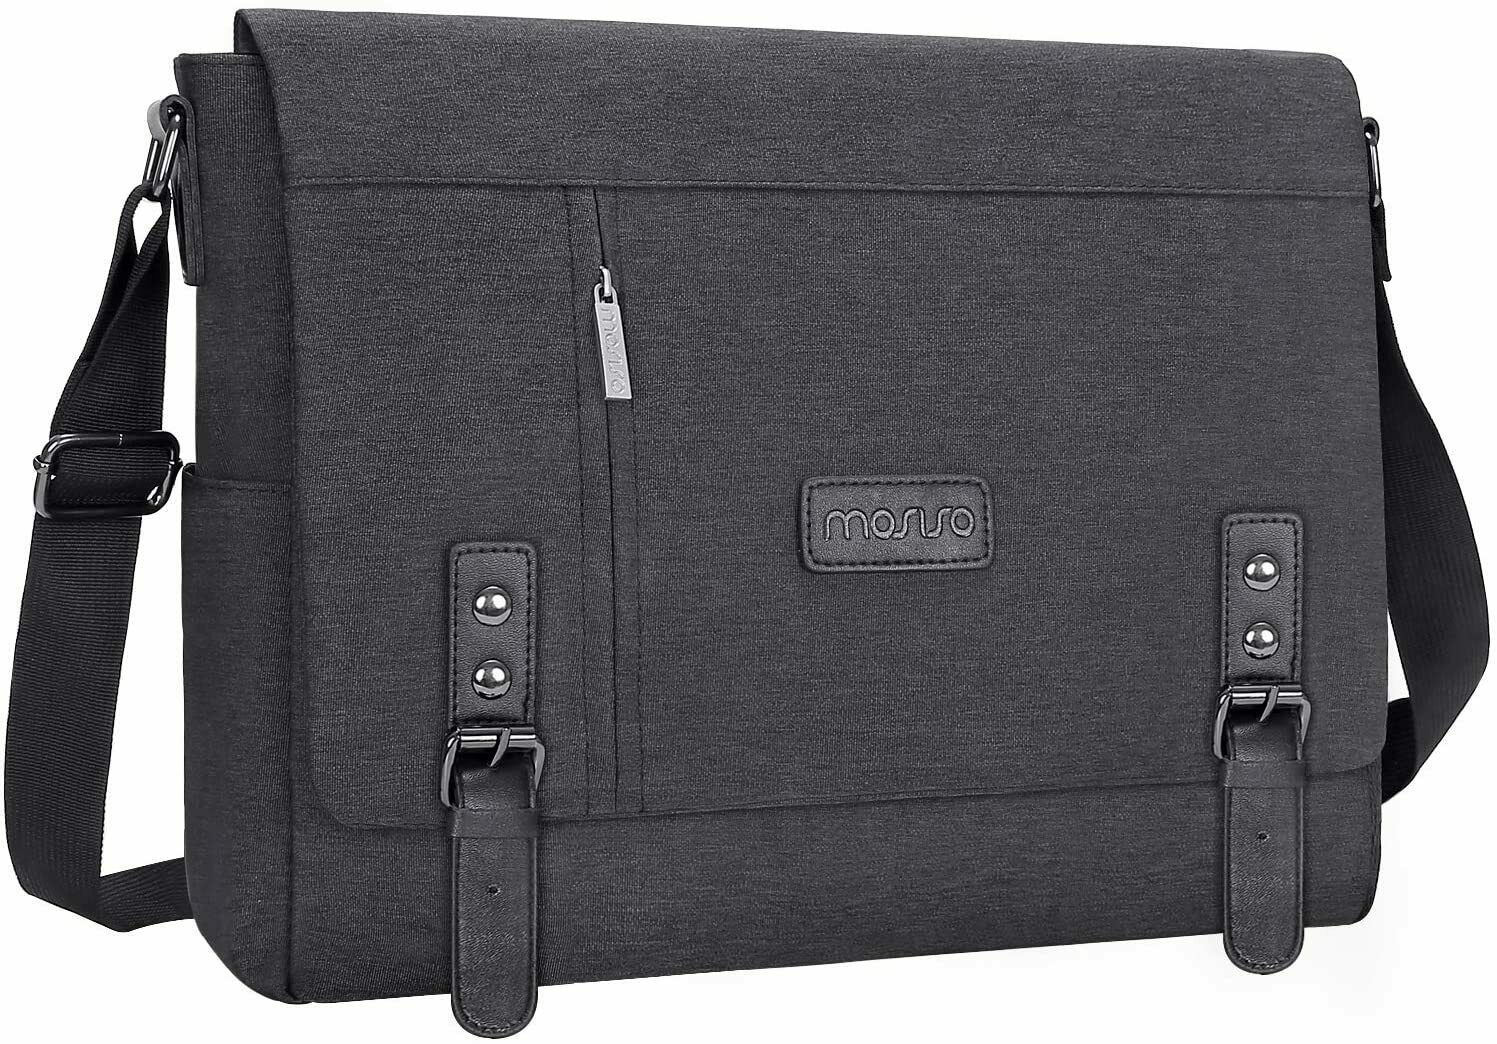 Laptop Messenger Shoulder Bag for MacBook Pro 16 A2141 15 15.6 inch Briefcase. Buy it now for 19.94